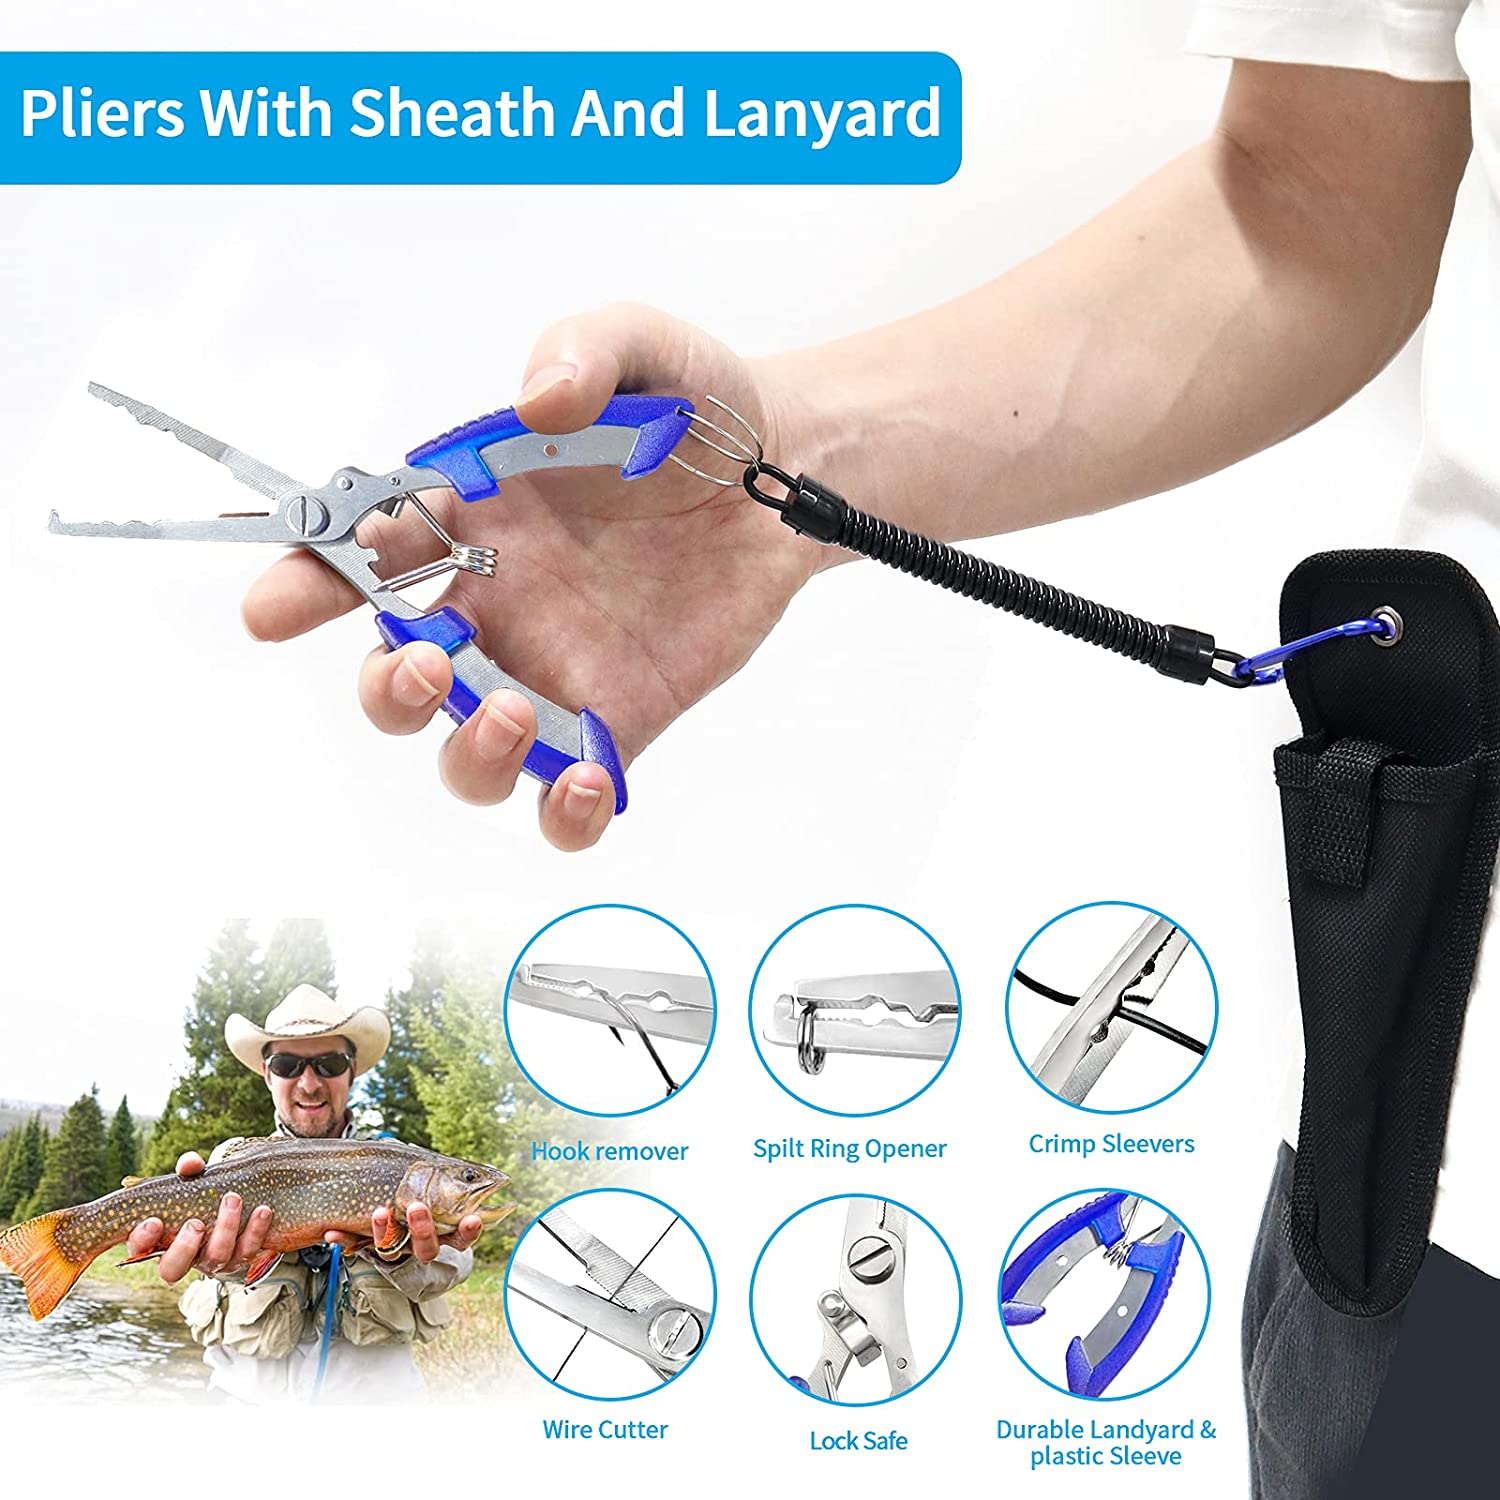 Fishing Tool Kit Includeds Fishing Pliers with Sheath, Fish Hook Remover Tool, Fish Lip Gripper,Digital Fish Scale,2 Fishing Lanyards and Fishing Lures,Fishing Gear Kit for Fishmen,fishing accessories : Sports & Outdoors